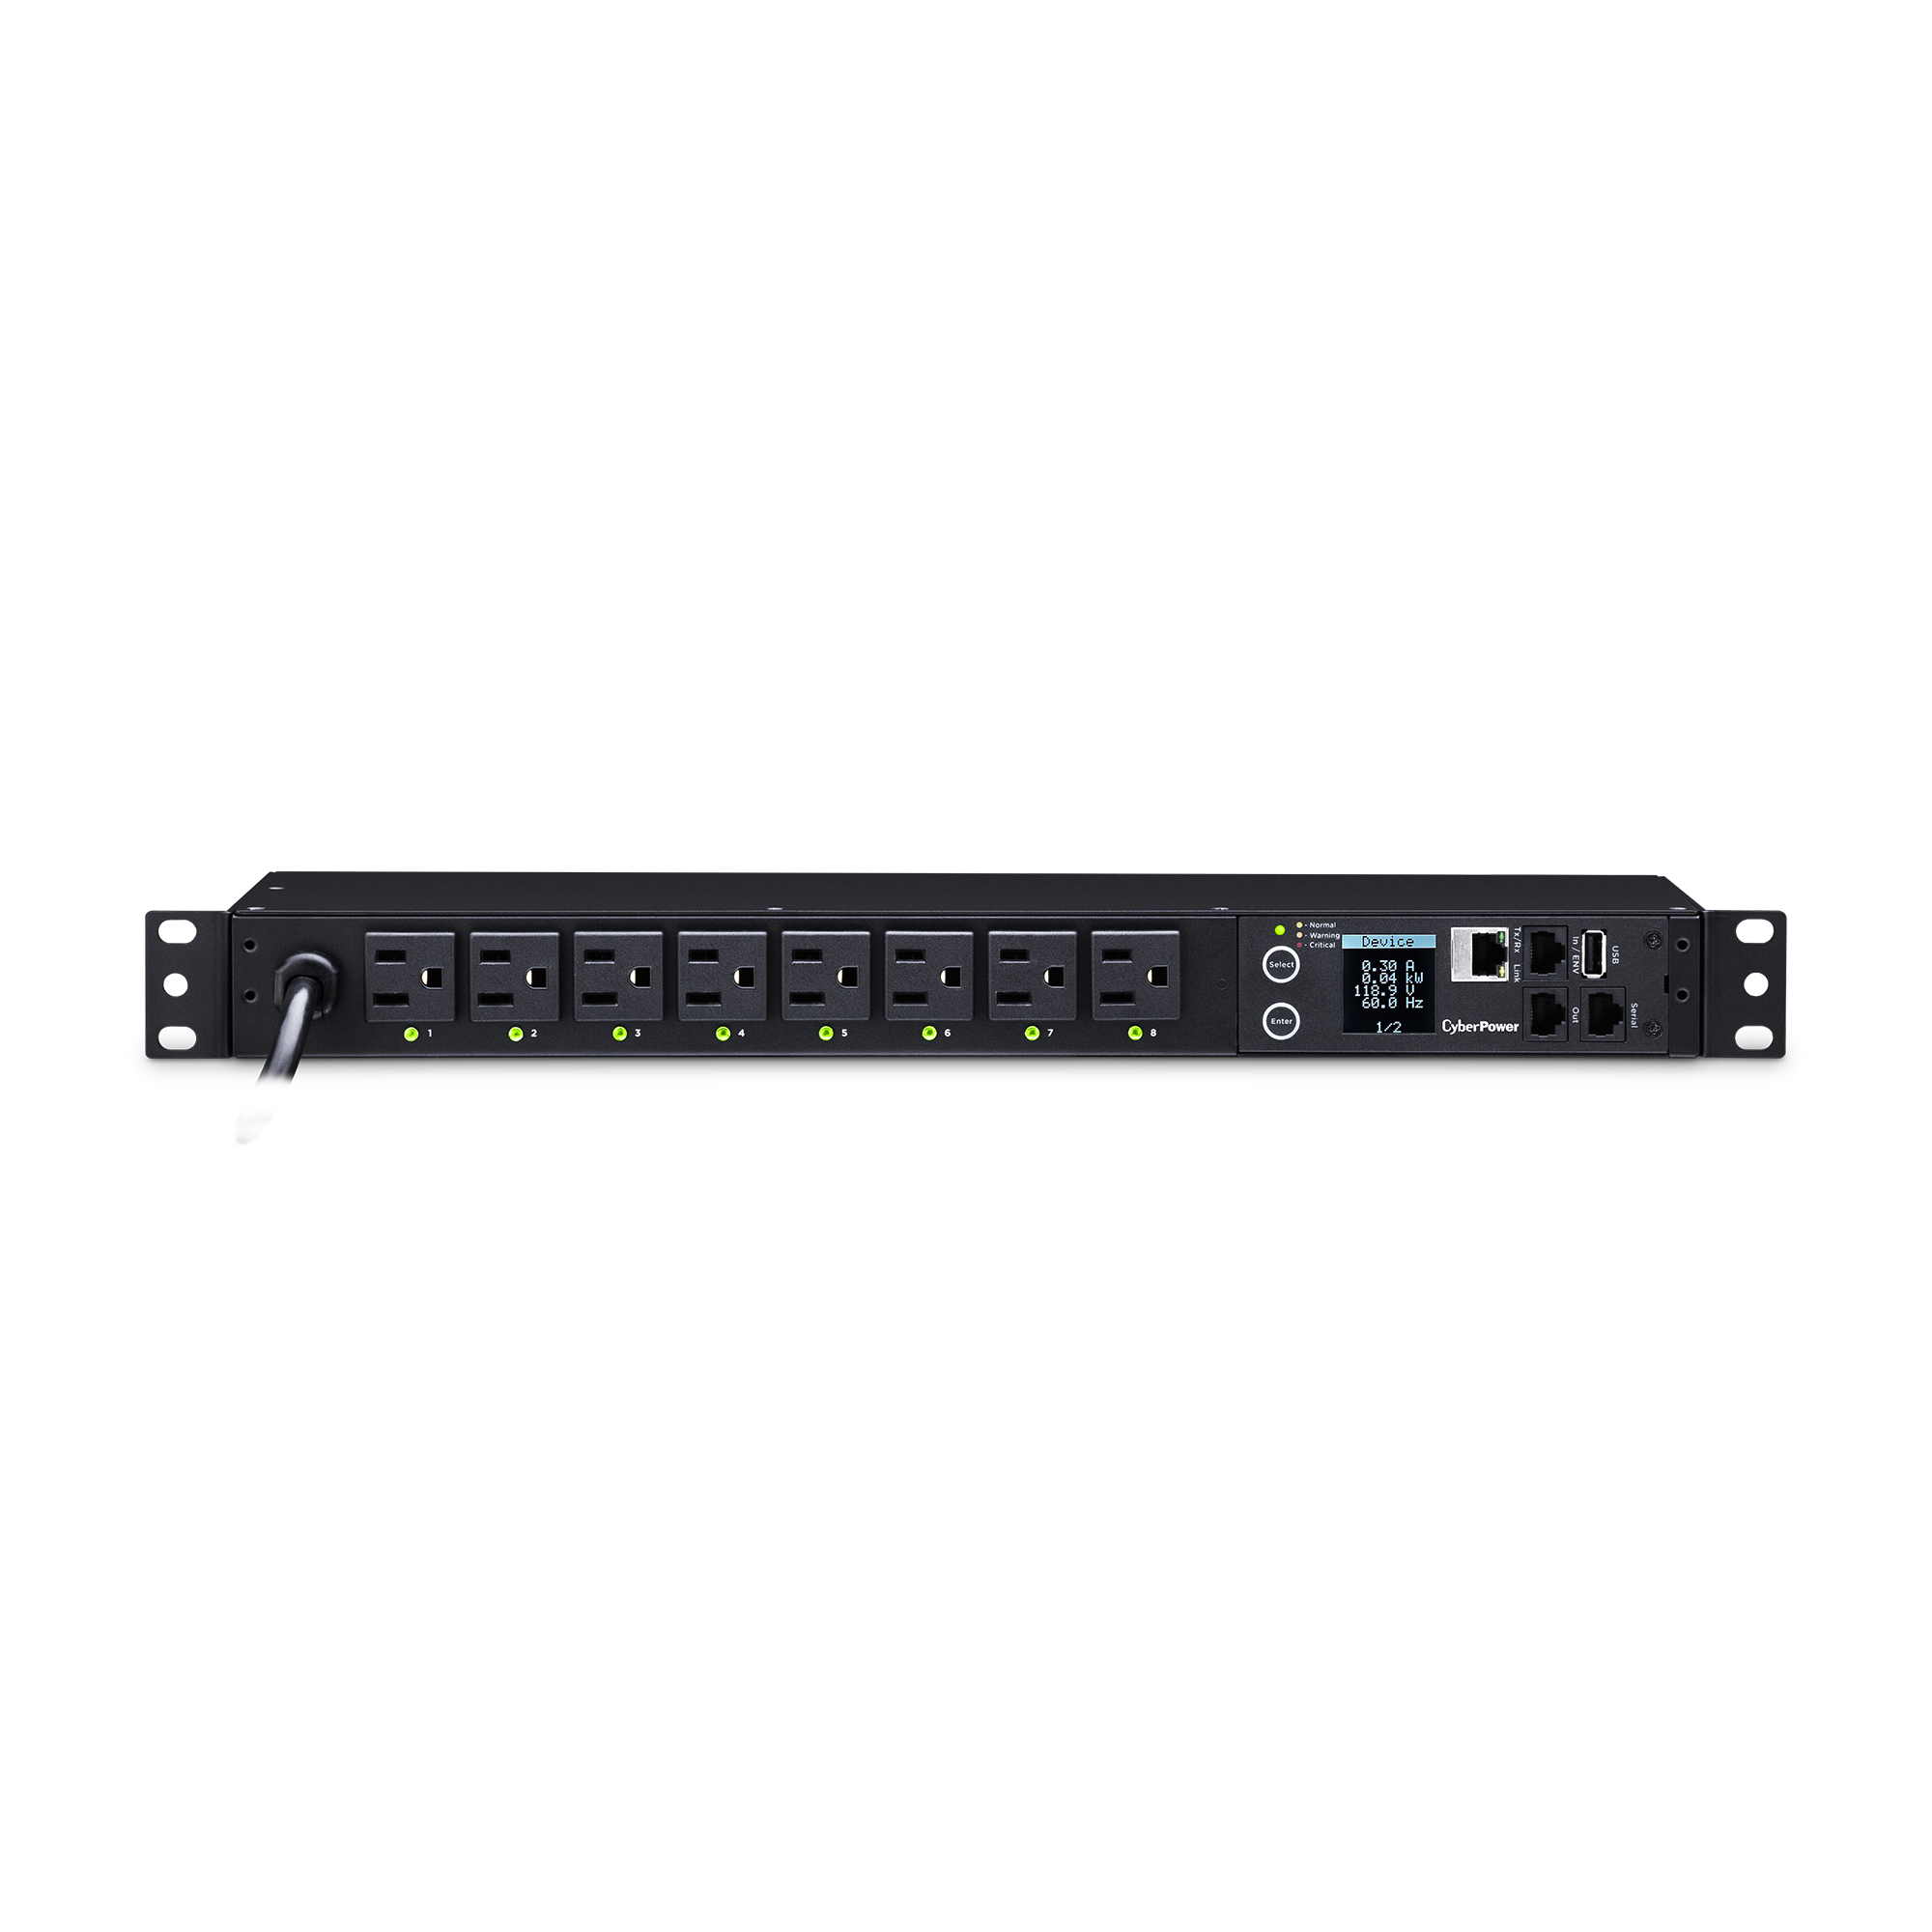 Load switching power strip